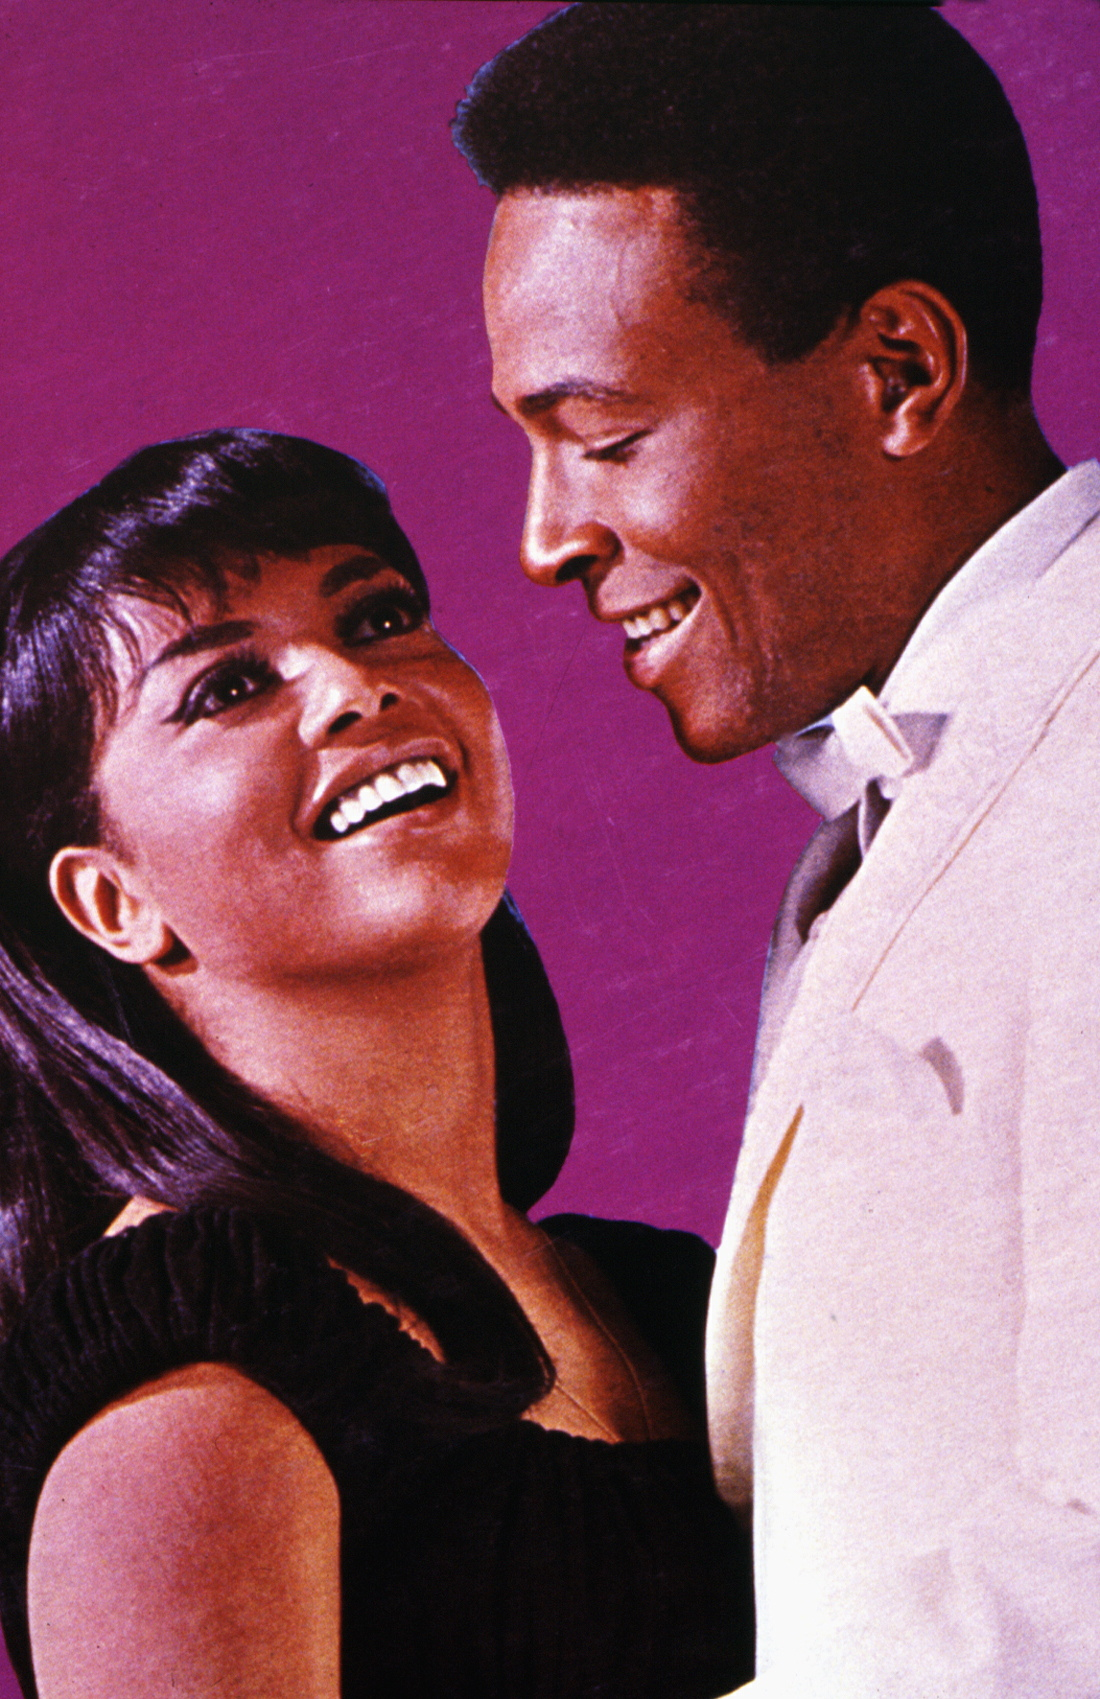 Photo of Marvin GAYE; Marvin Gaye and Tammi Terrell.